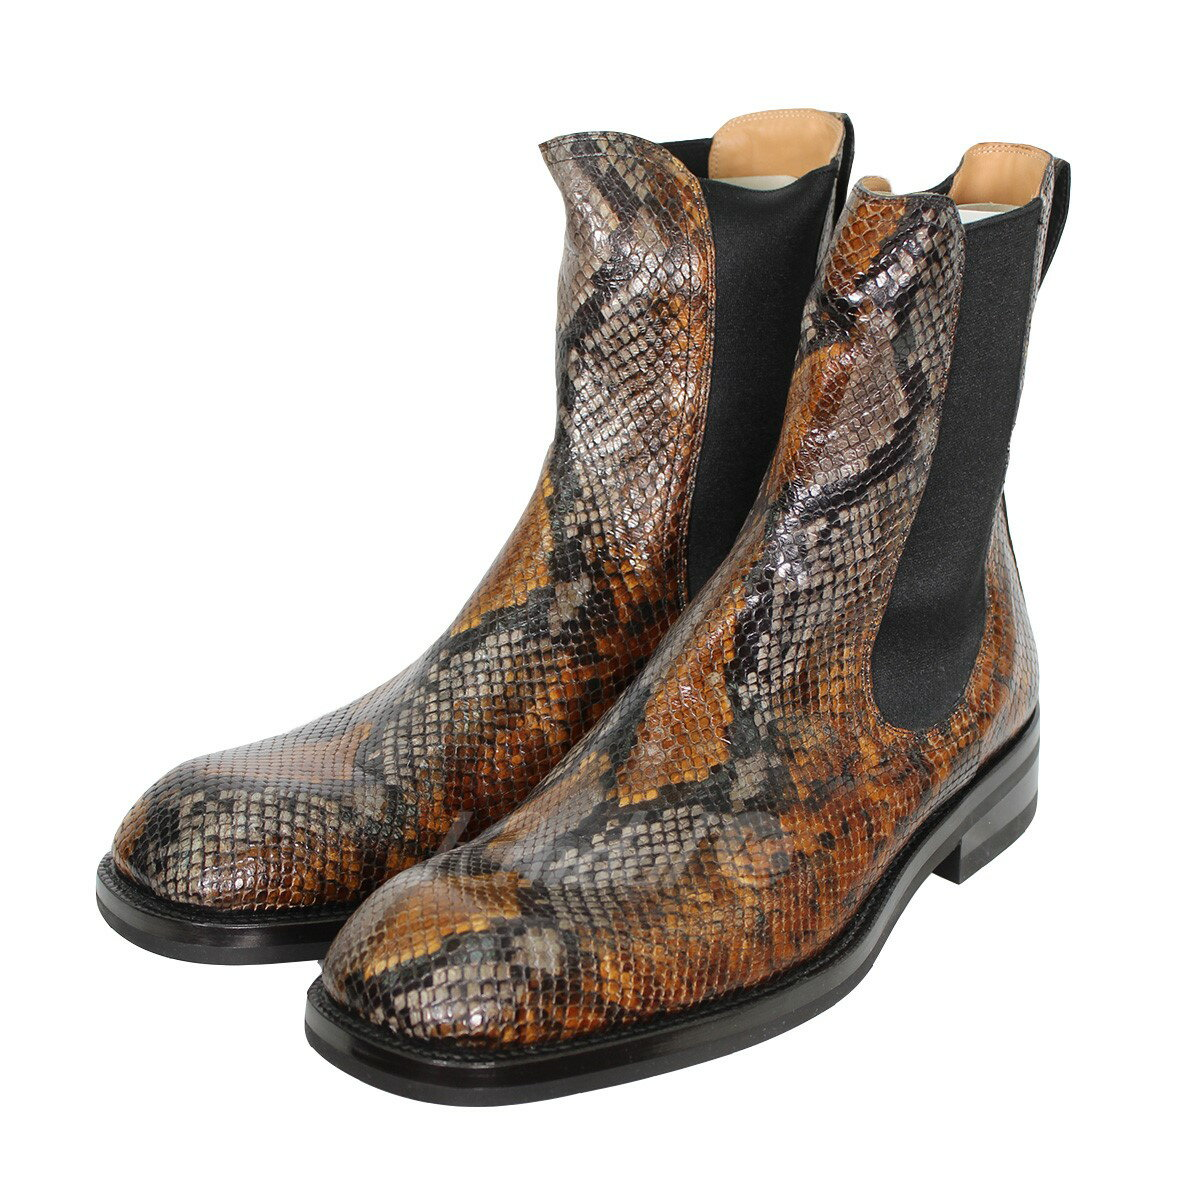 cd28c5ad589 DRIES VAN NOTEN Square Toe Chelsea Boot python leather side Gore boots  brown size: 44 (ドリスヴァンノッテン)